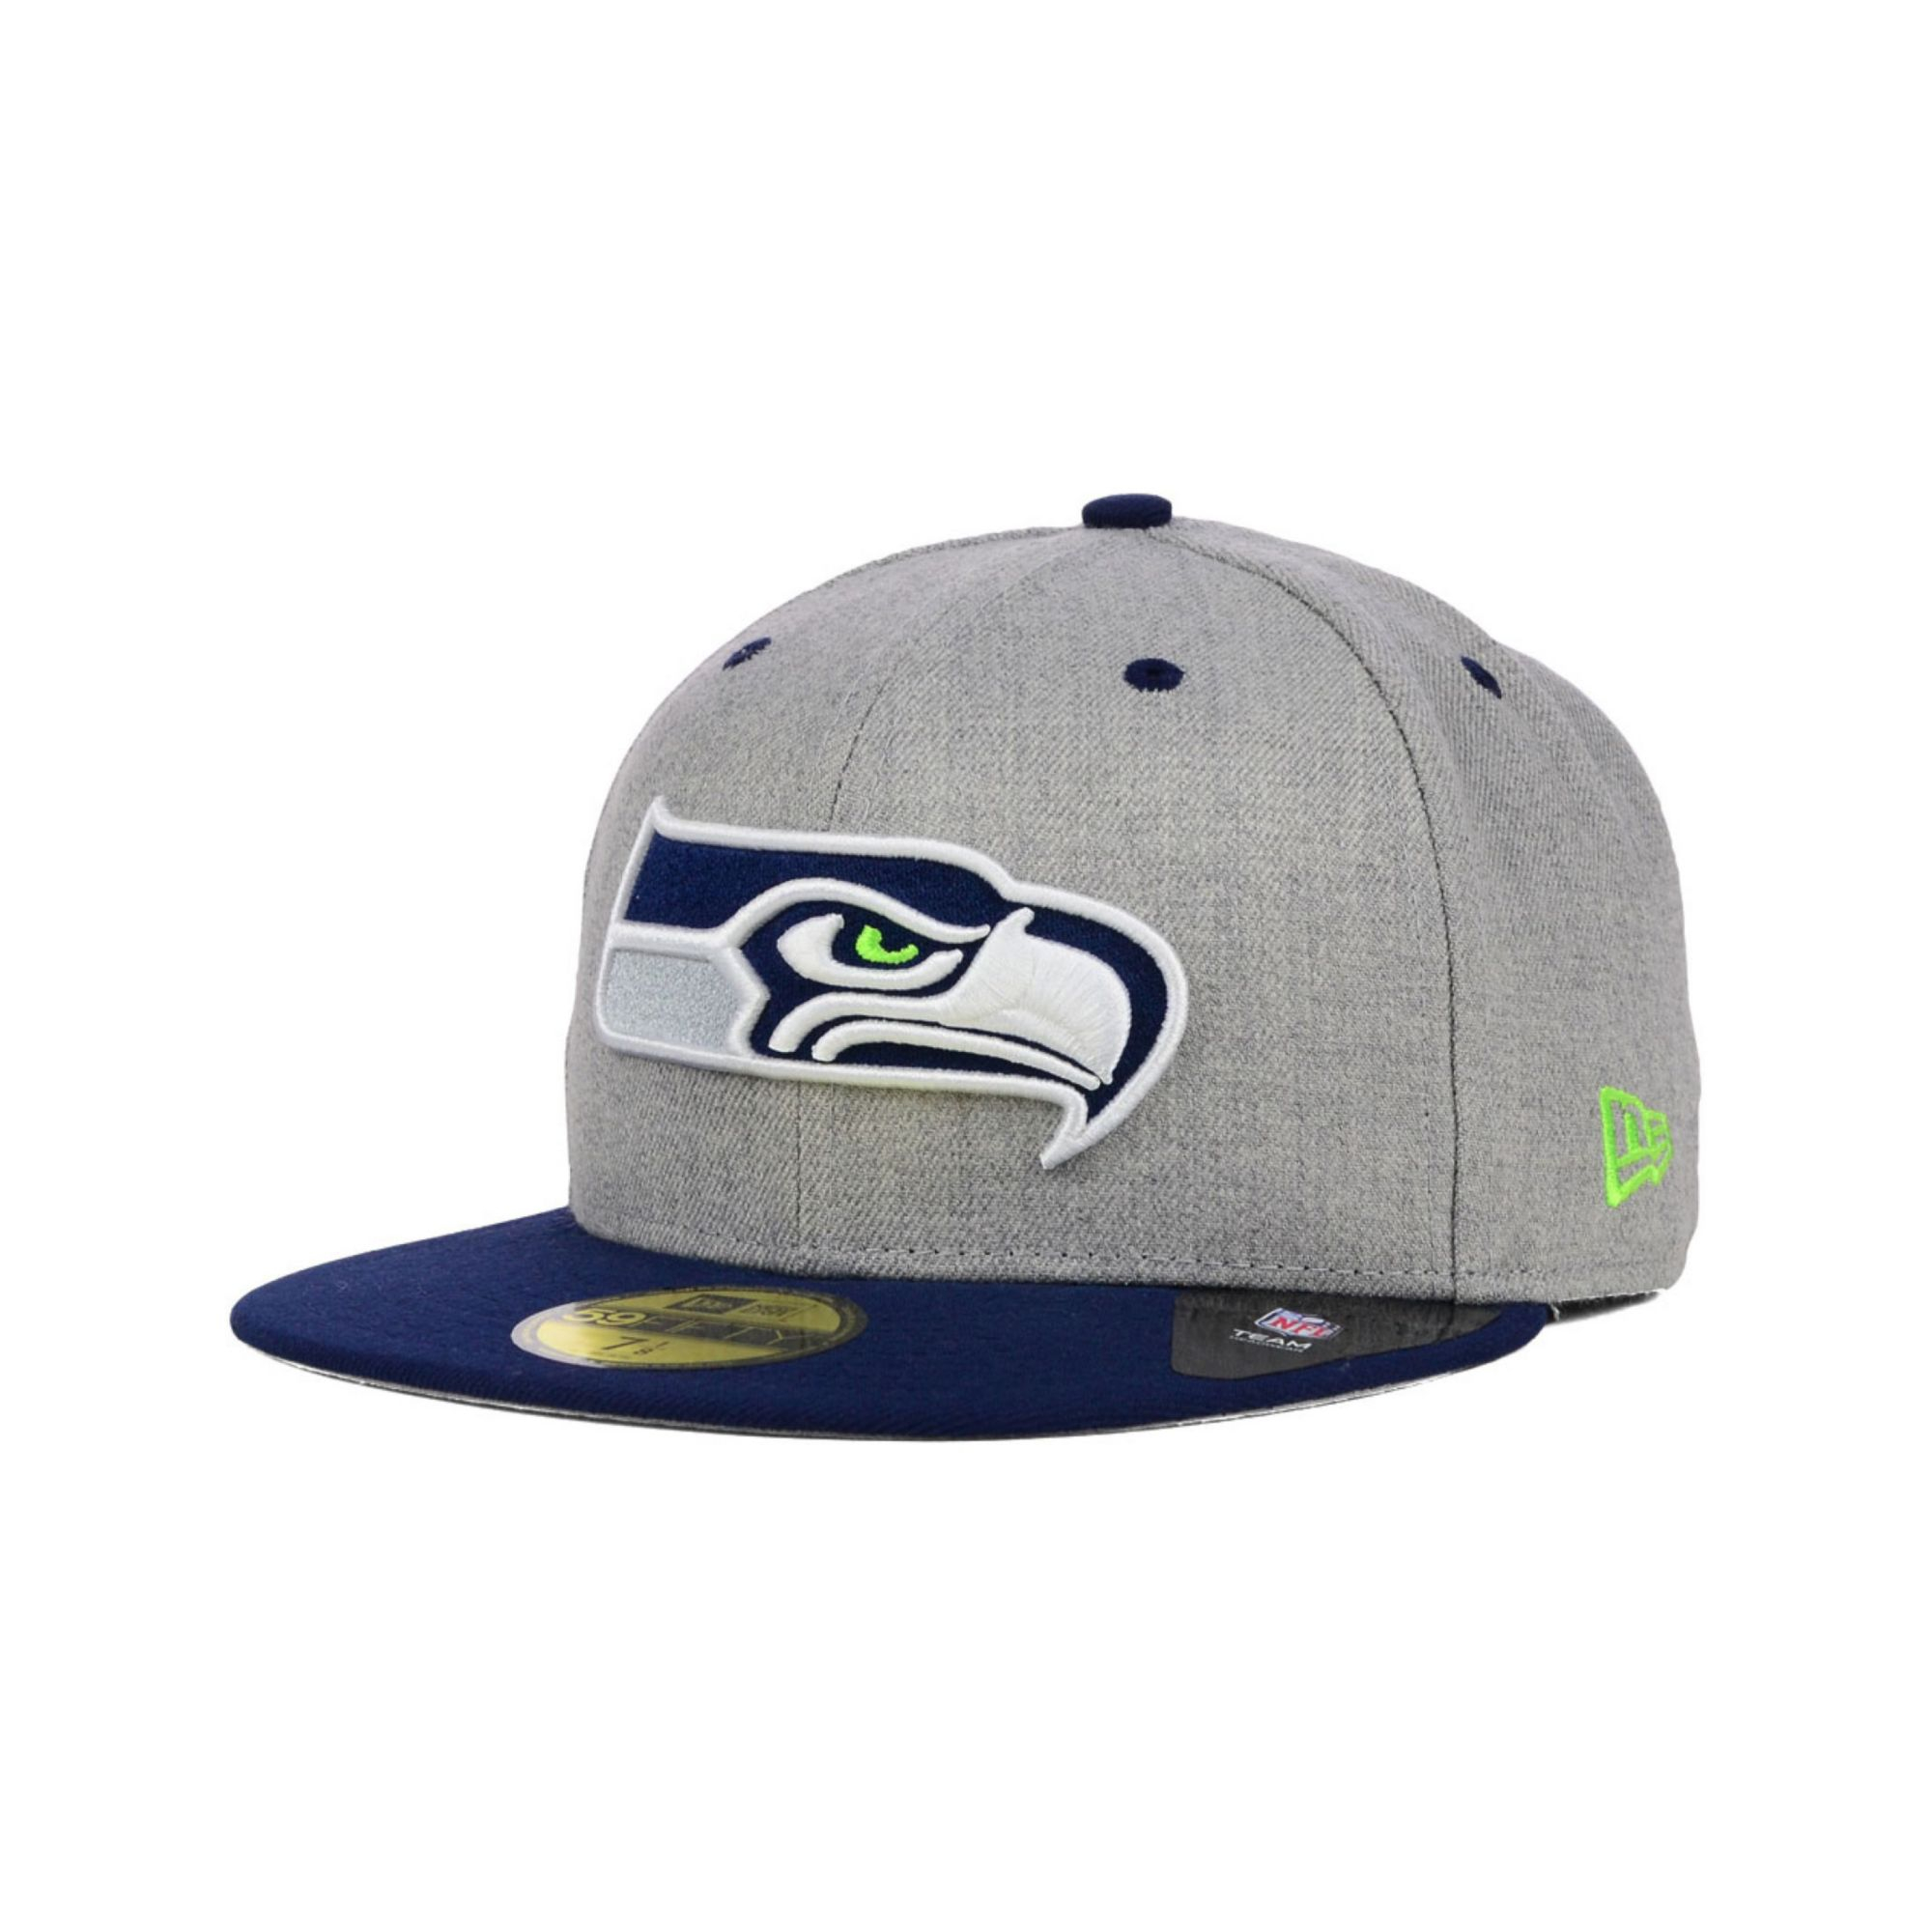 new era seattle seahawks streamliner 59fifty cap in gray. Black Bedroom Furniture Sets. Home Design Ideas